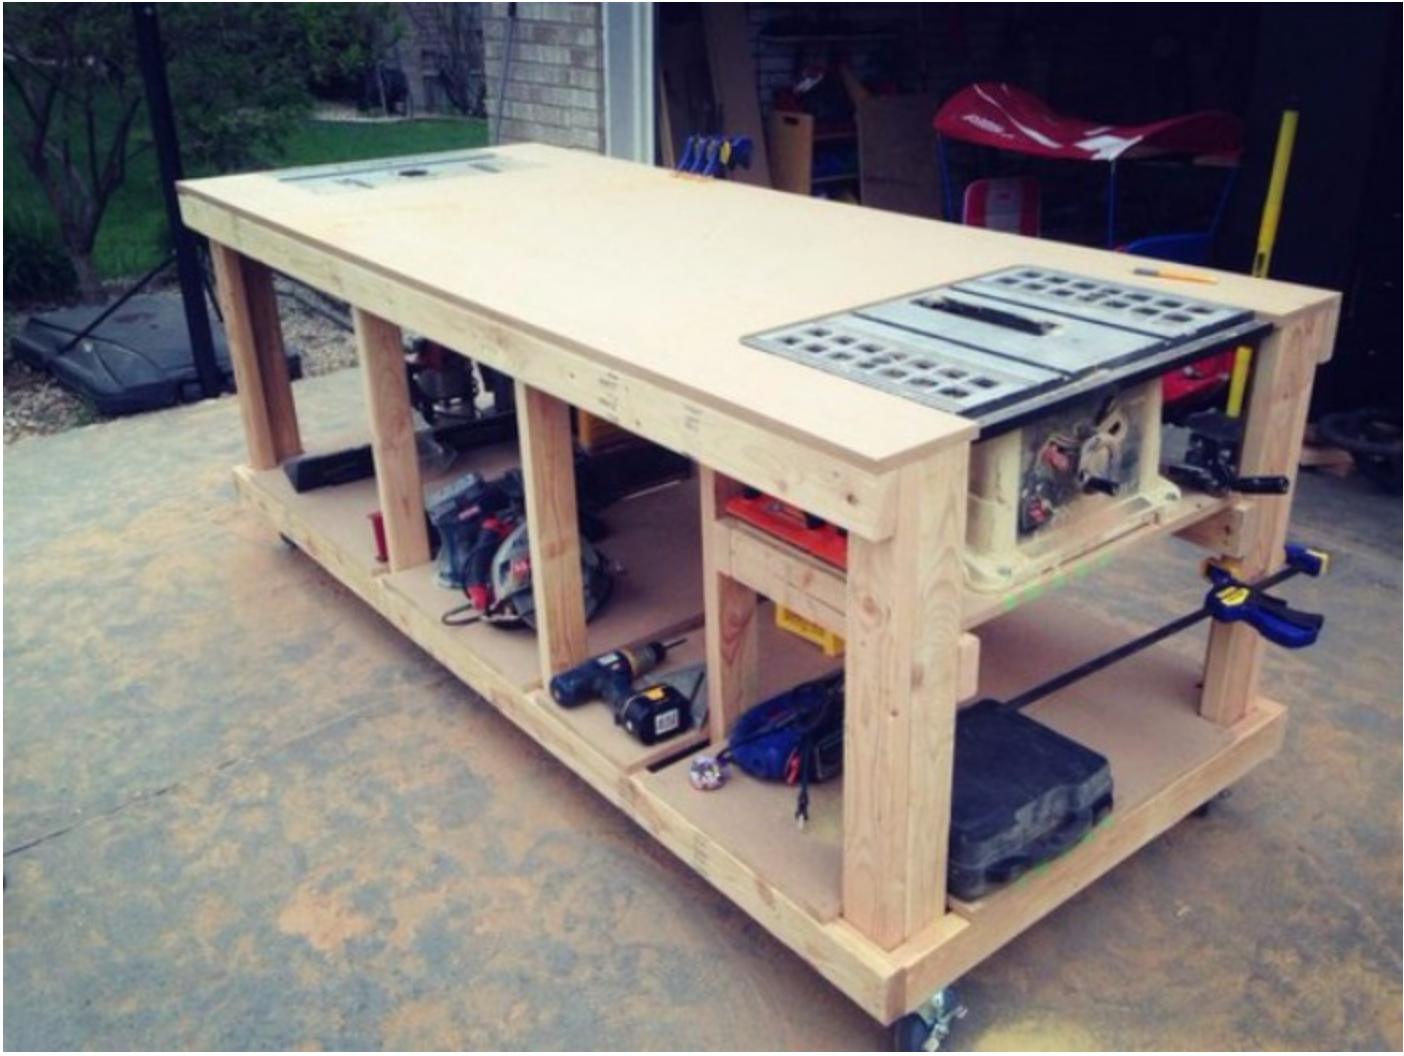 Easy Build Work Bench With Router And Table Saw Built In